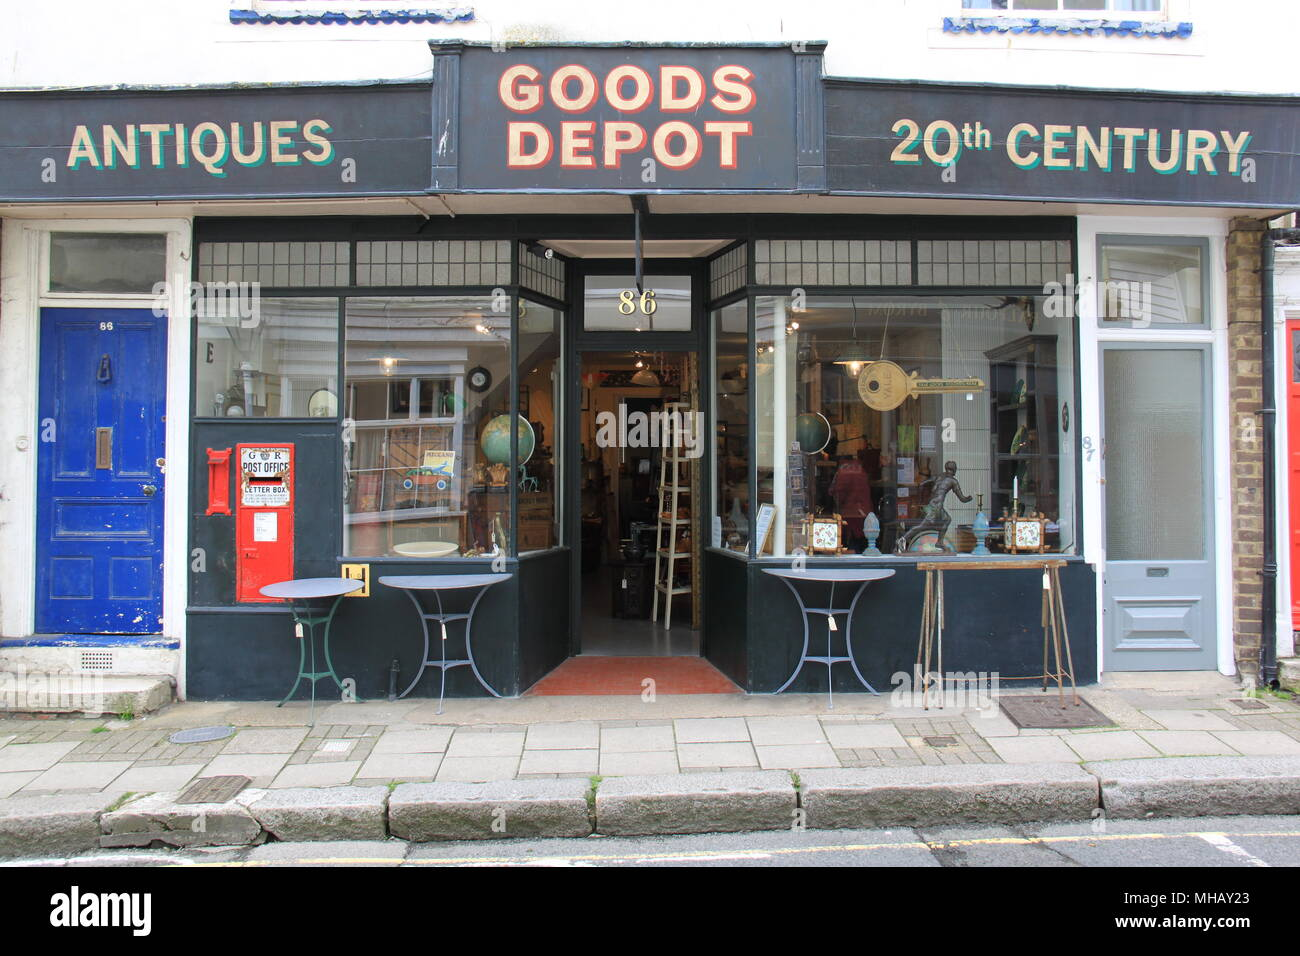 Goods Depot, Antiques Shop, 86 High Street, Hastings Old Town, Hastings, Sussex, England, UK, PETER GRANT - Stock Image